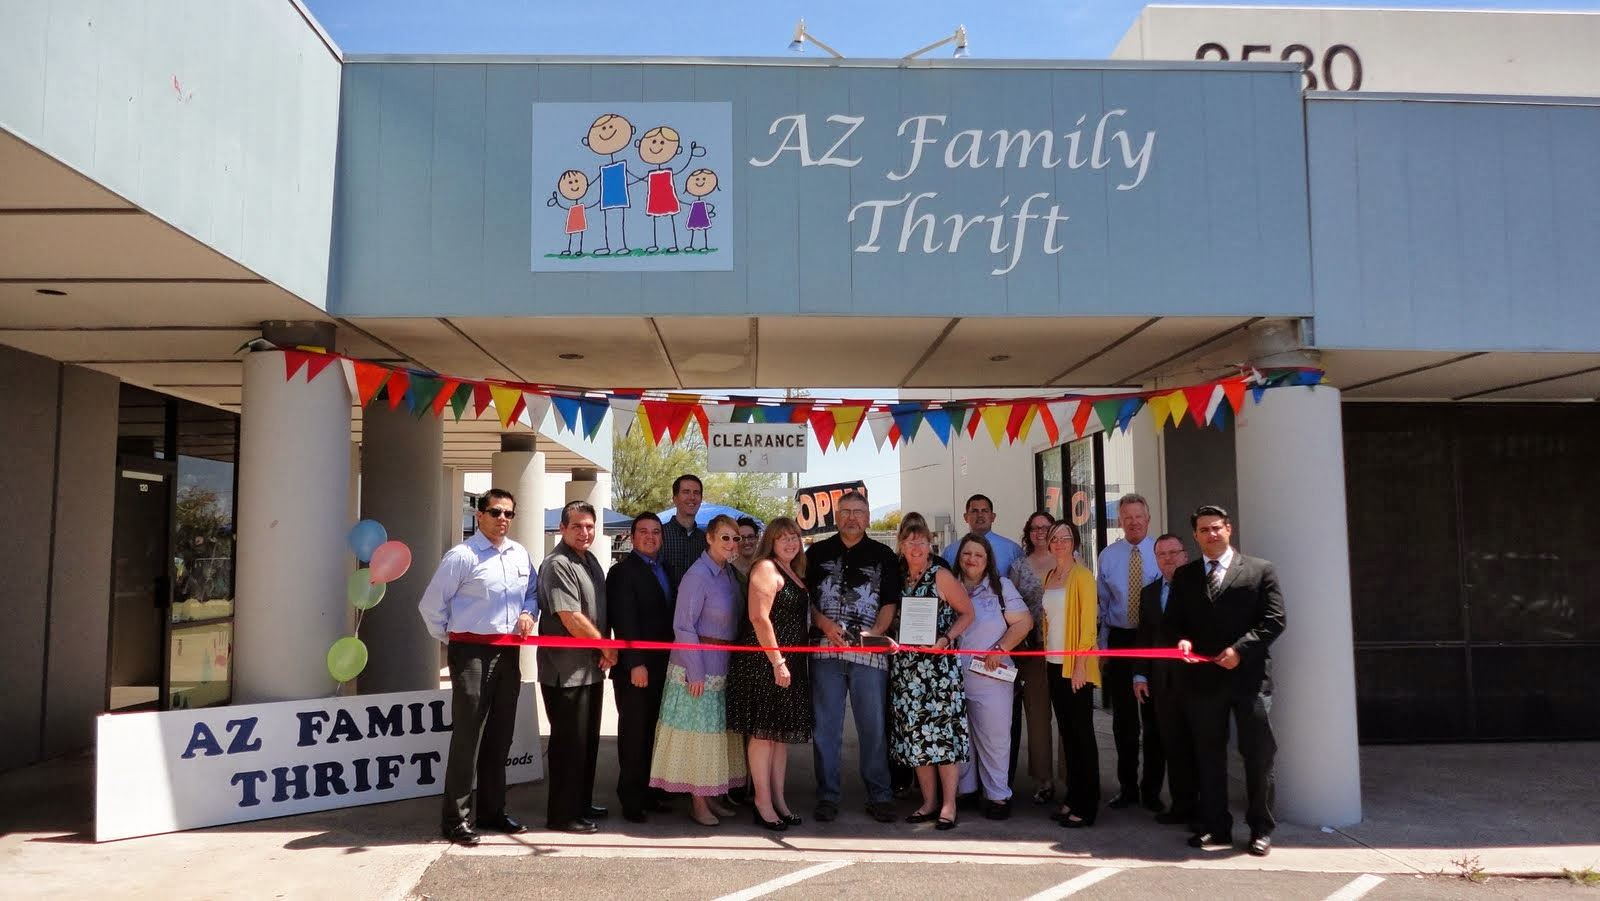 Family owned and operated, AZ Family Thrift is a step above the average thrift store.  Selling quality used clothing, furniture, electronics, house wares, toys, books, movies, music, collectibles, vintage items, antiques and much more.